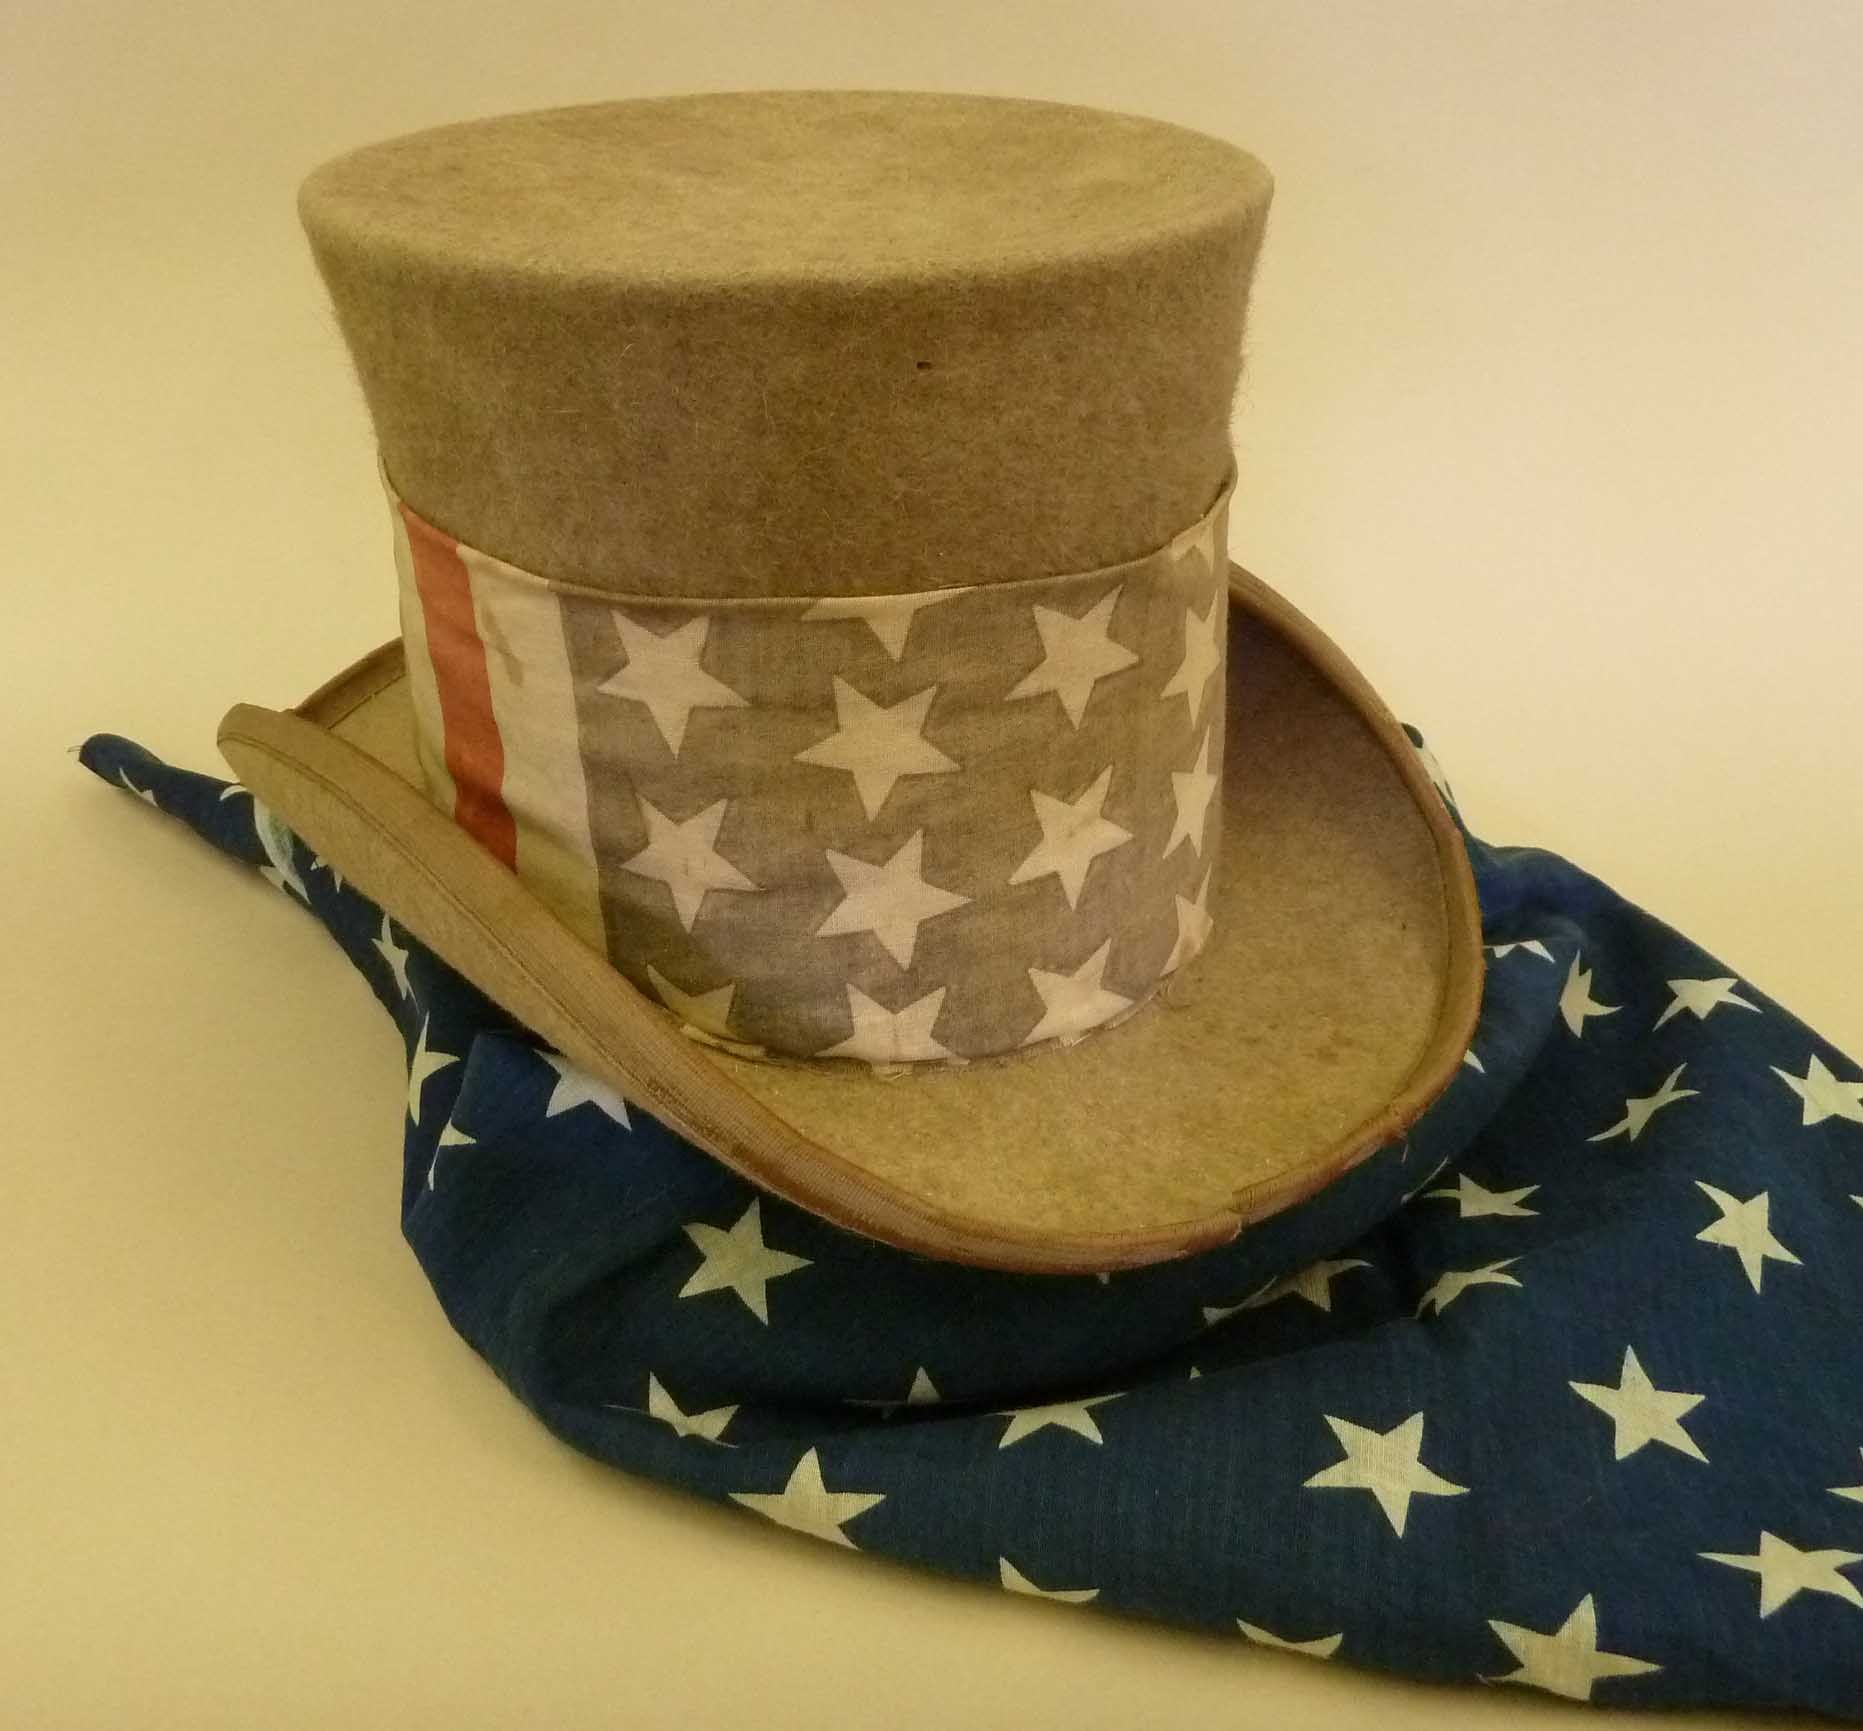 1892 Campaign Hat & Scarf Elements Of 19th Century